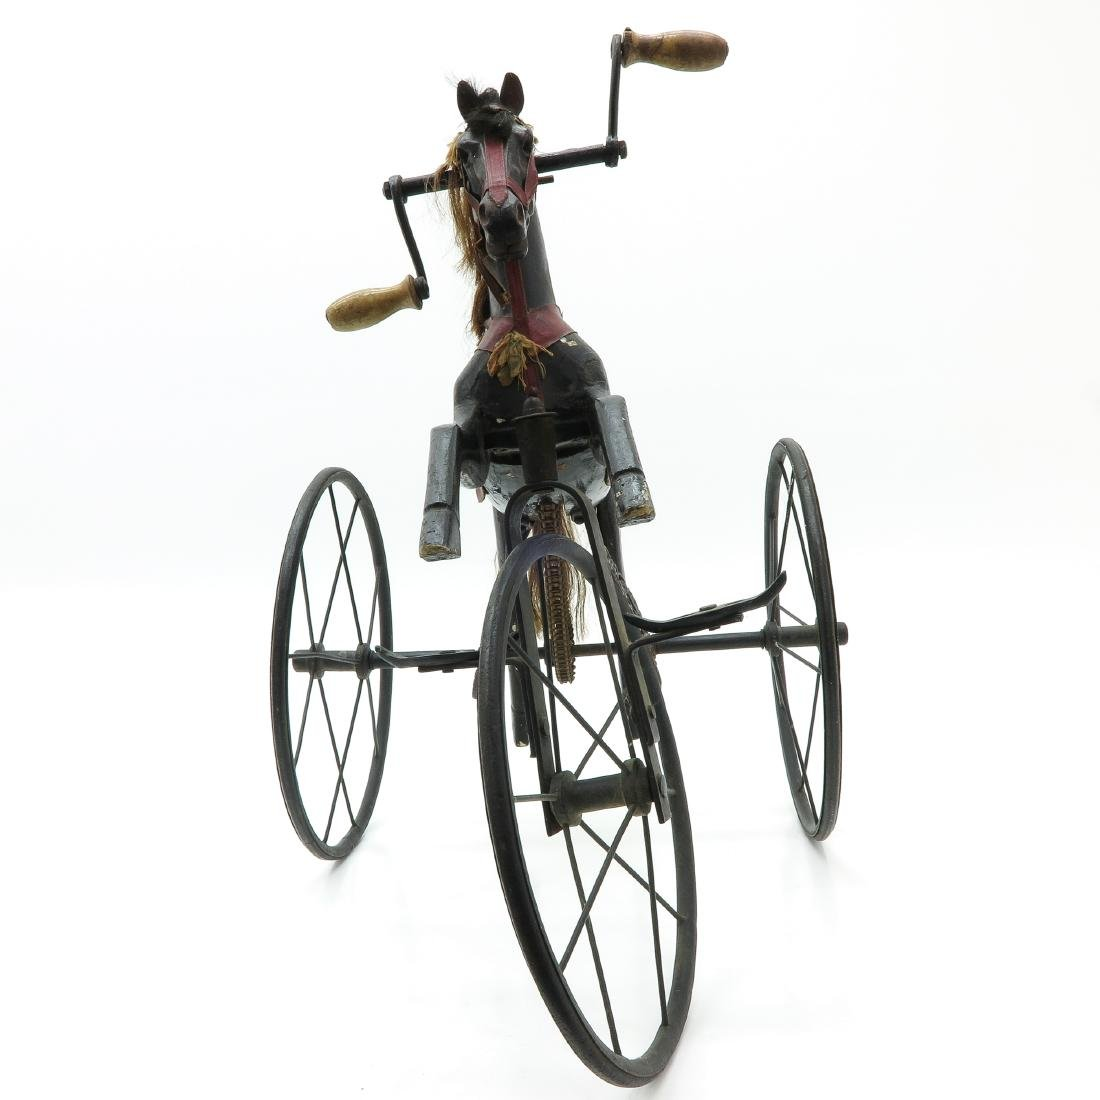 A Nice Antique French Toy Horse on Wheels Circa 1880 - 2